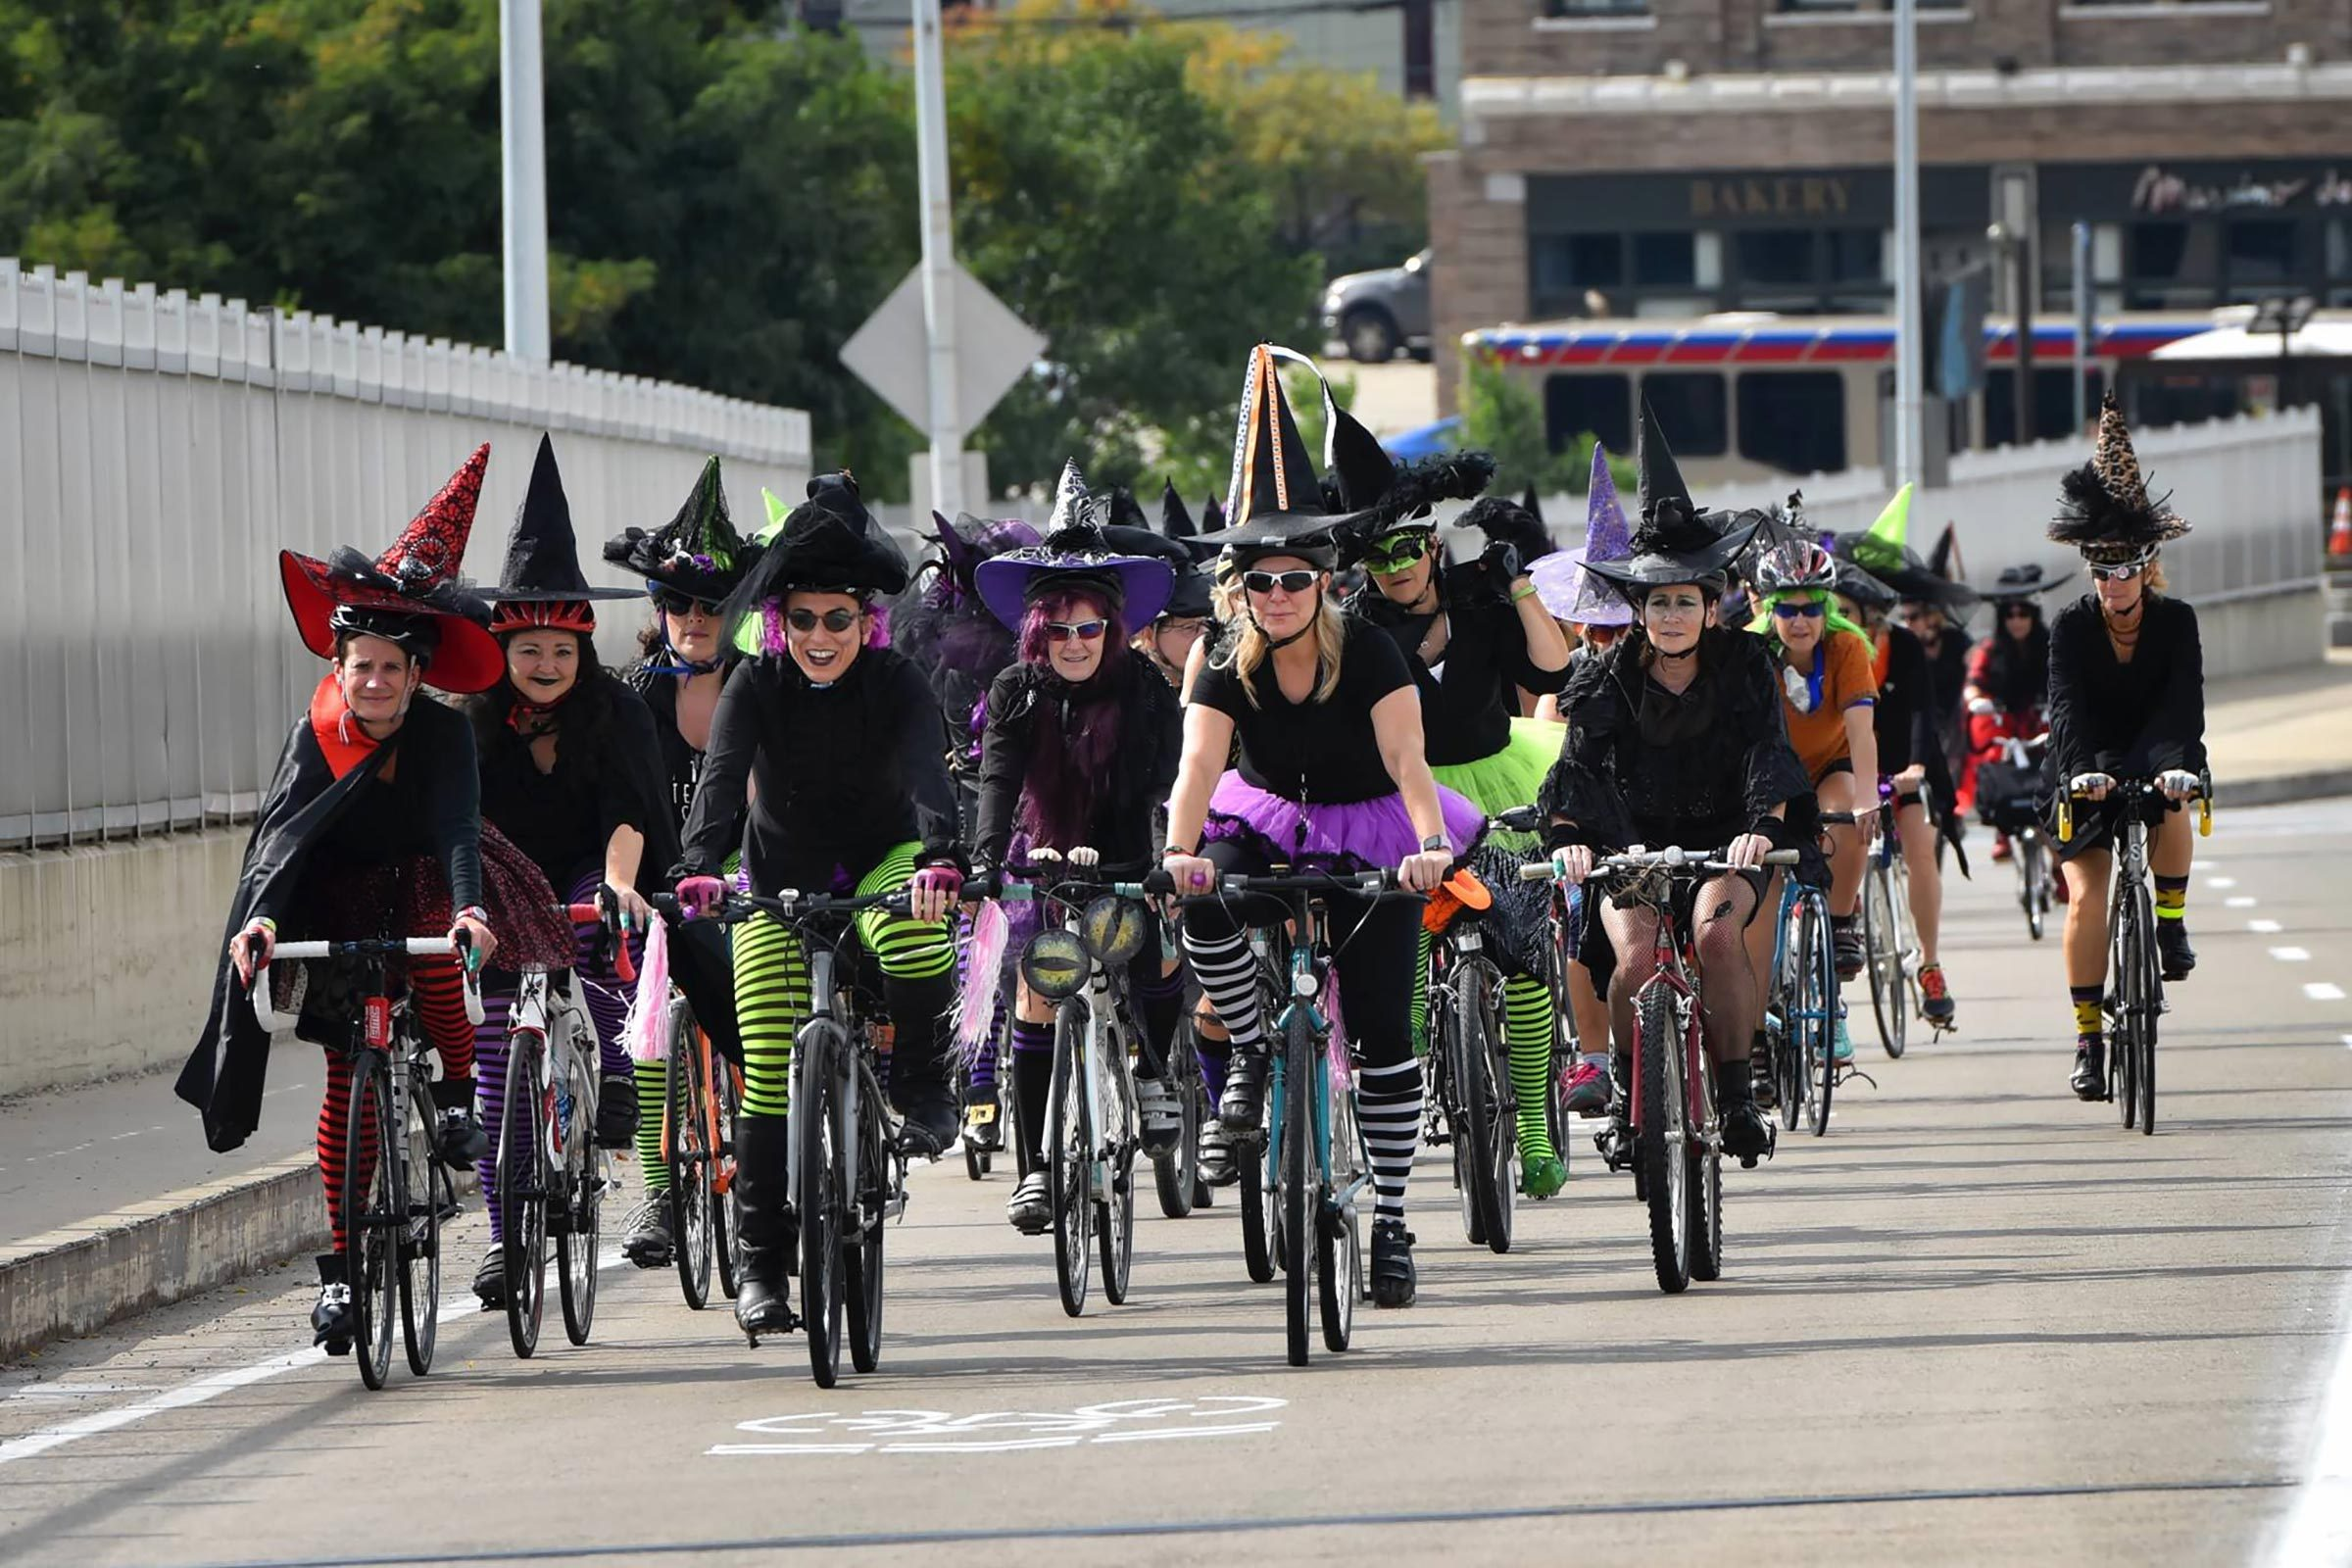 Bicycling For Weight Loss >> Witches Rides Turn Bicycling Into a Festive Fundraiser | Reader's Digest